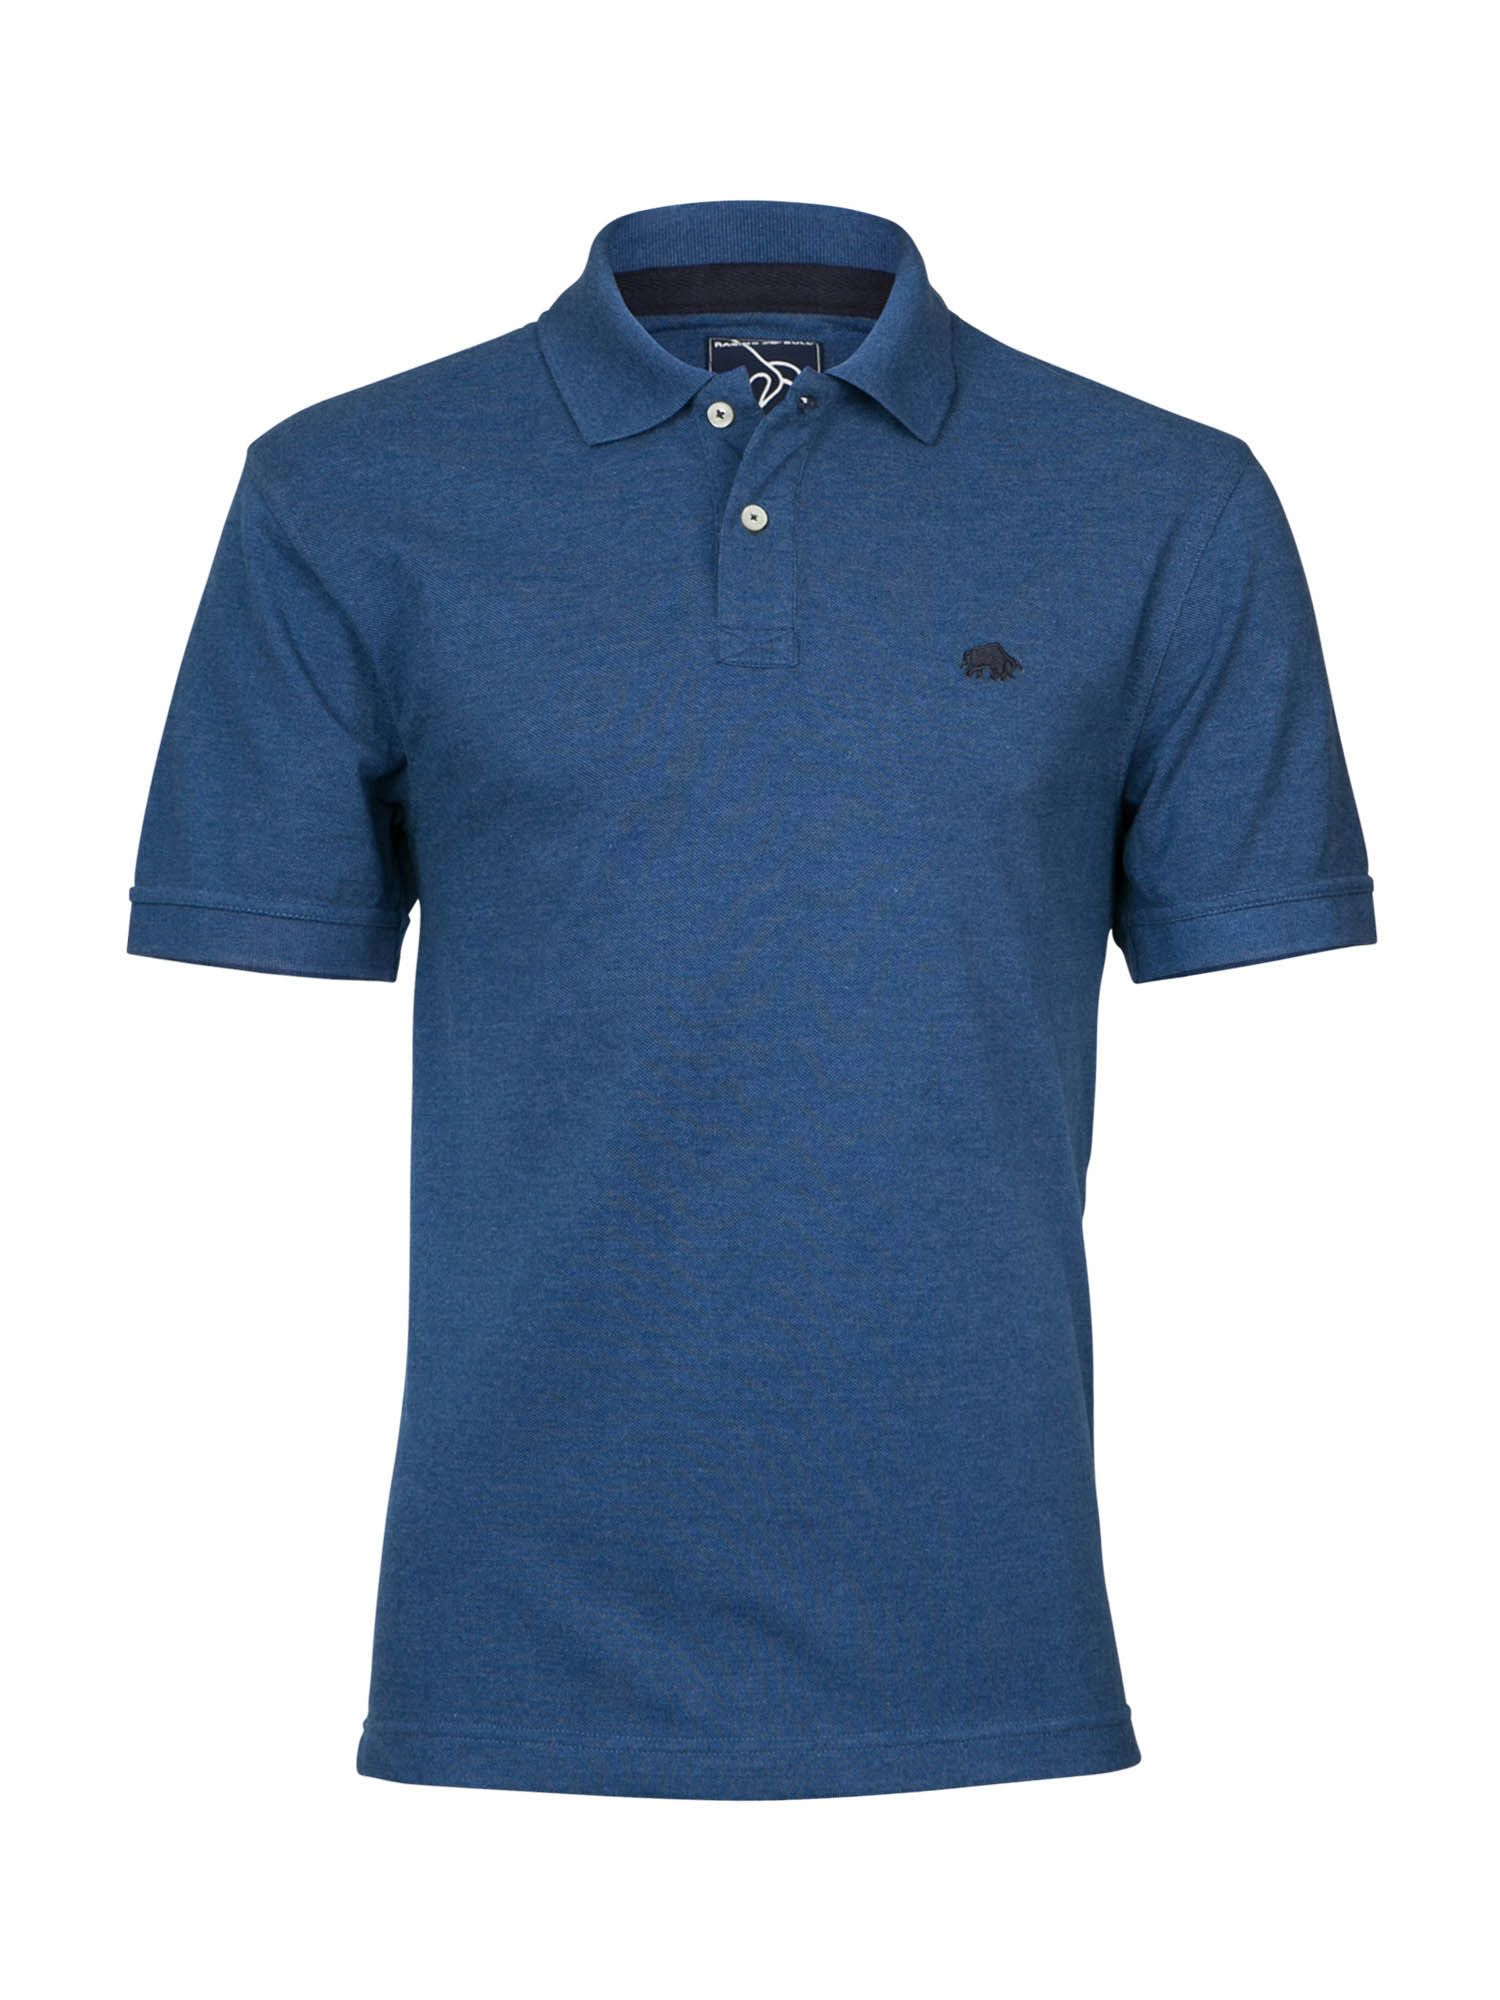 Men's Raging Bull New Signature Polo, Blue